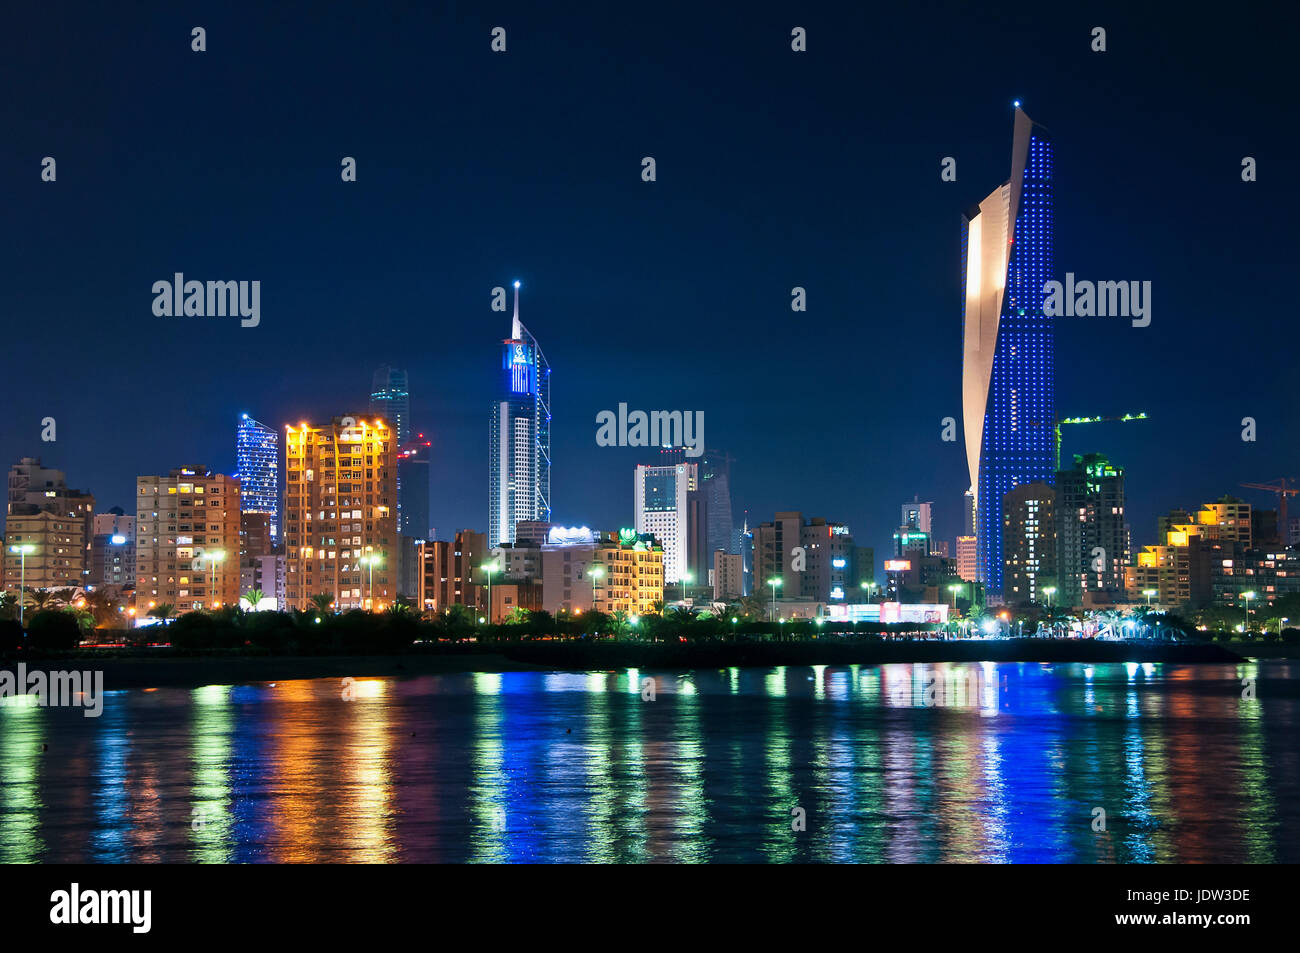 Kuwait City skyline reflected in water - Stock Image